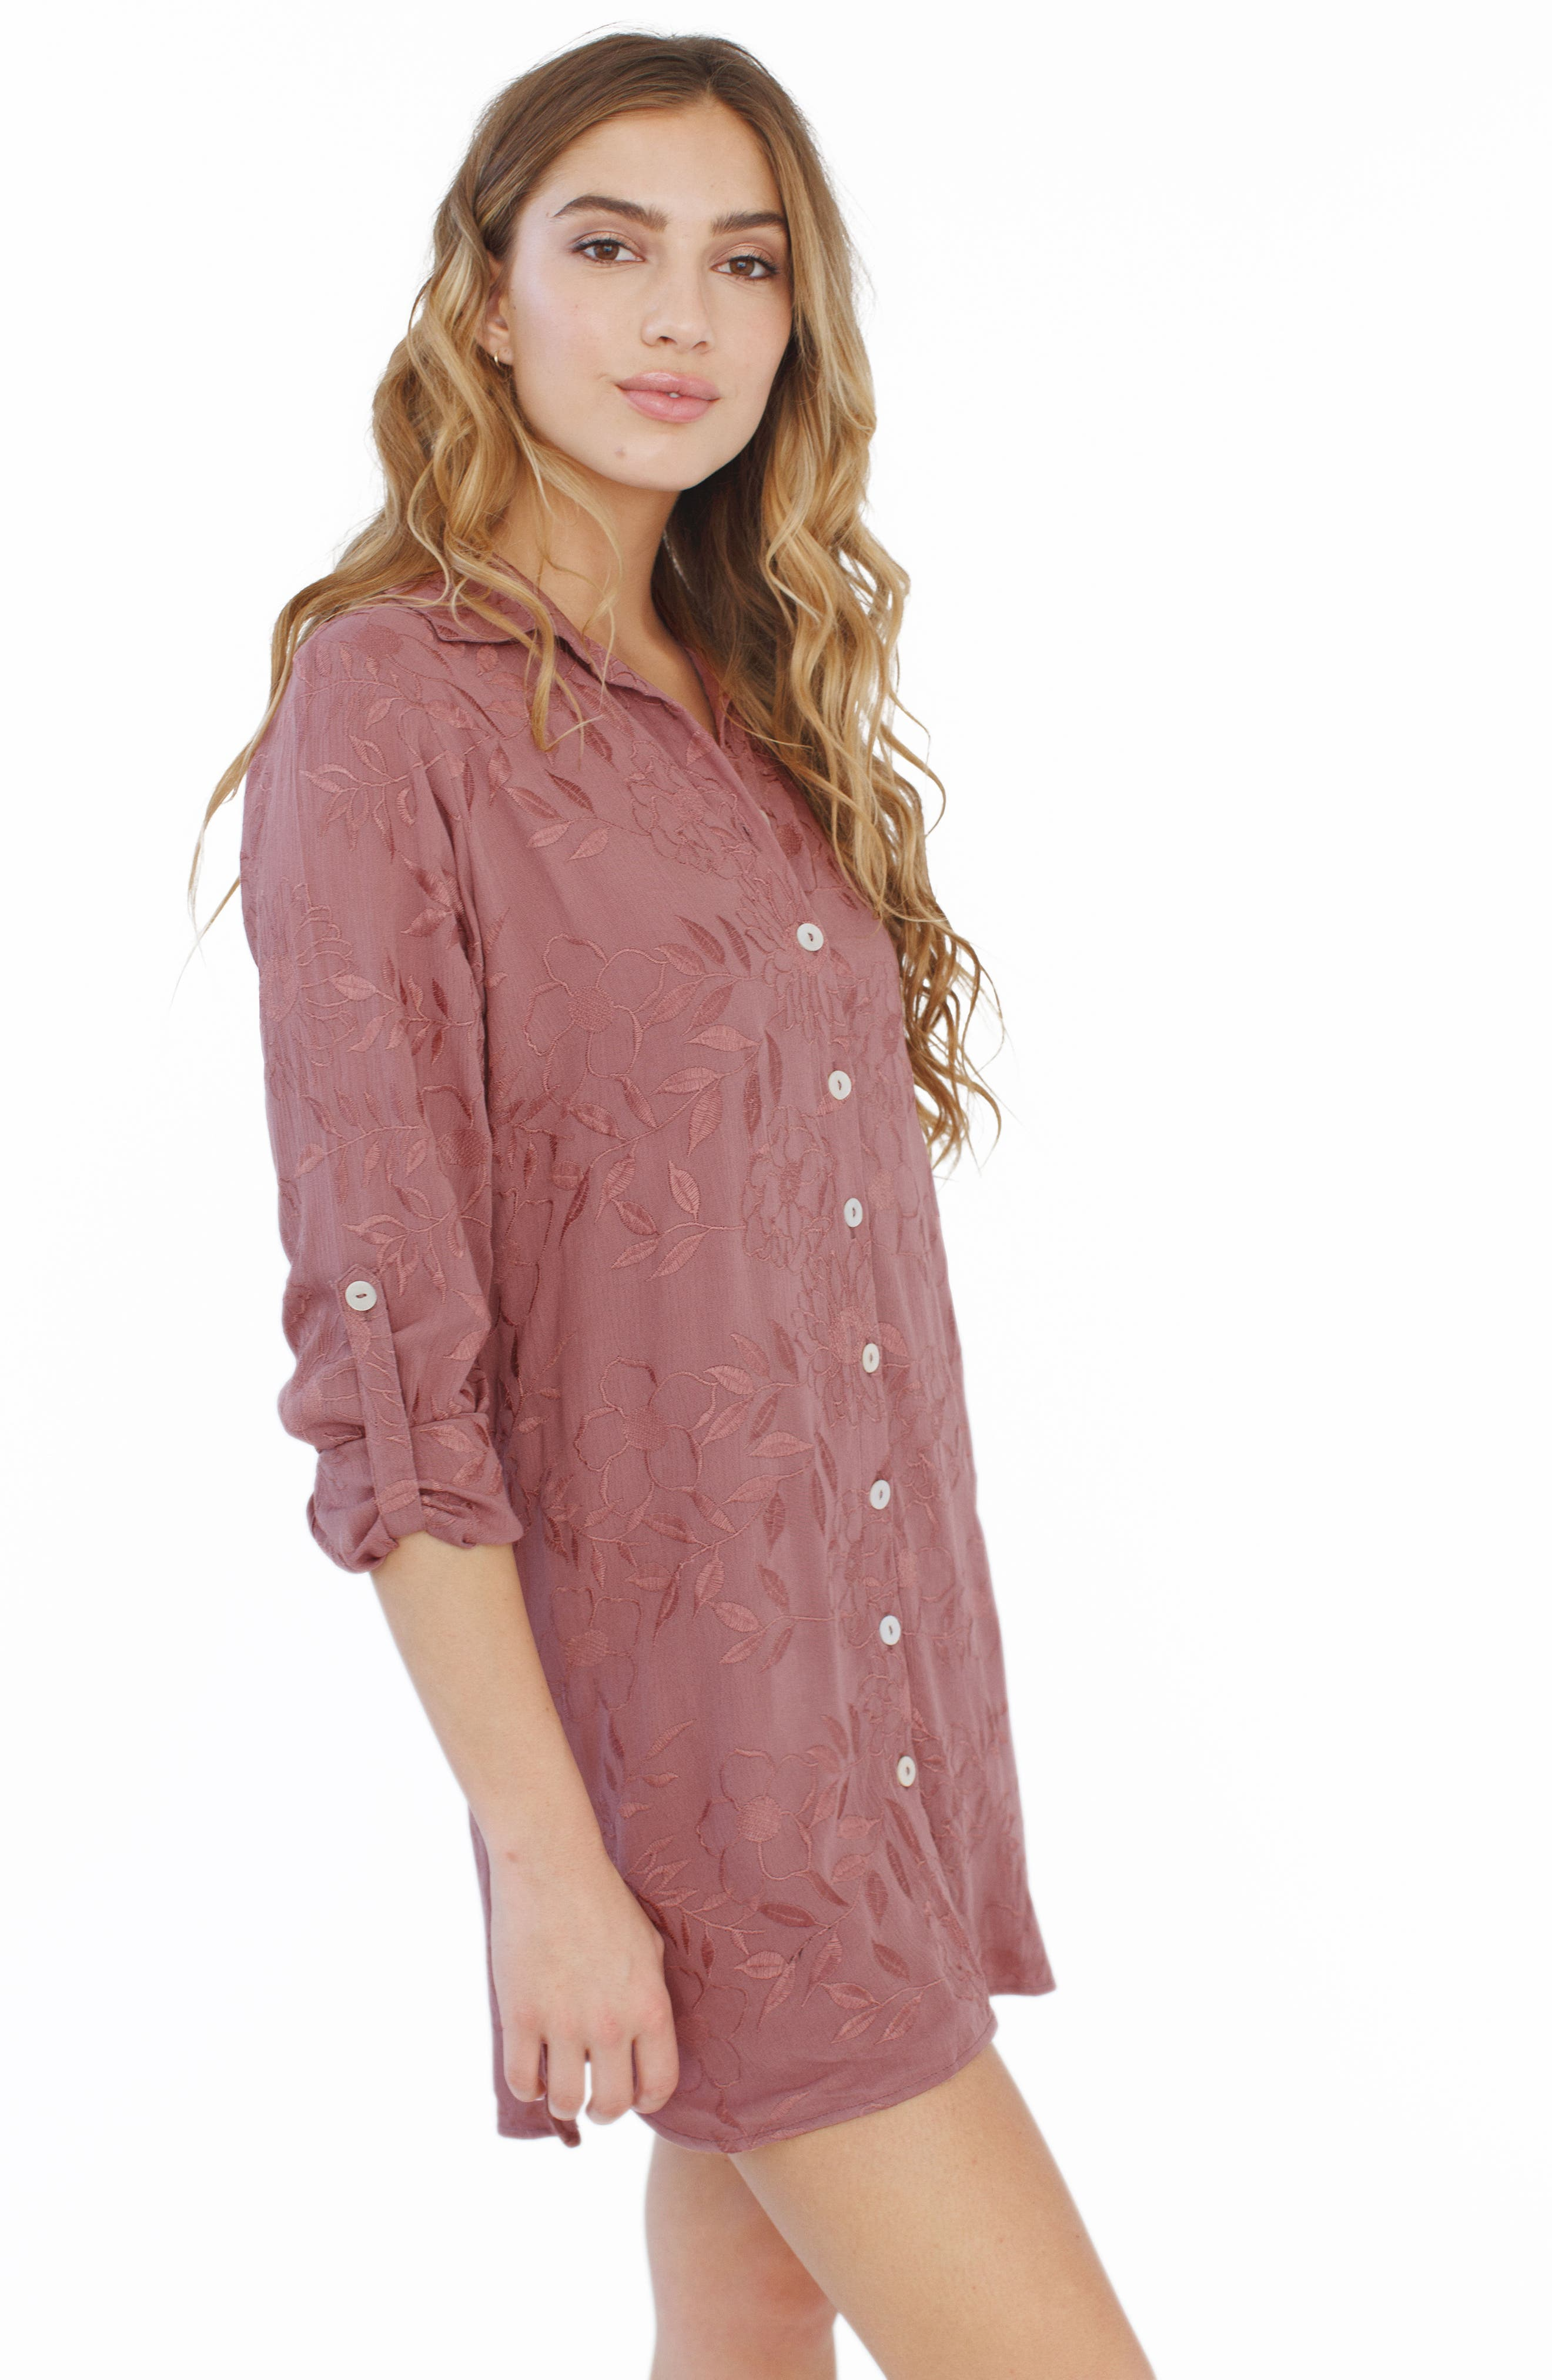 Floral Embroidered Nightshirt,                             Alternate thumbnail 2, color,                             510